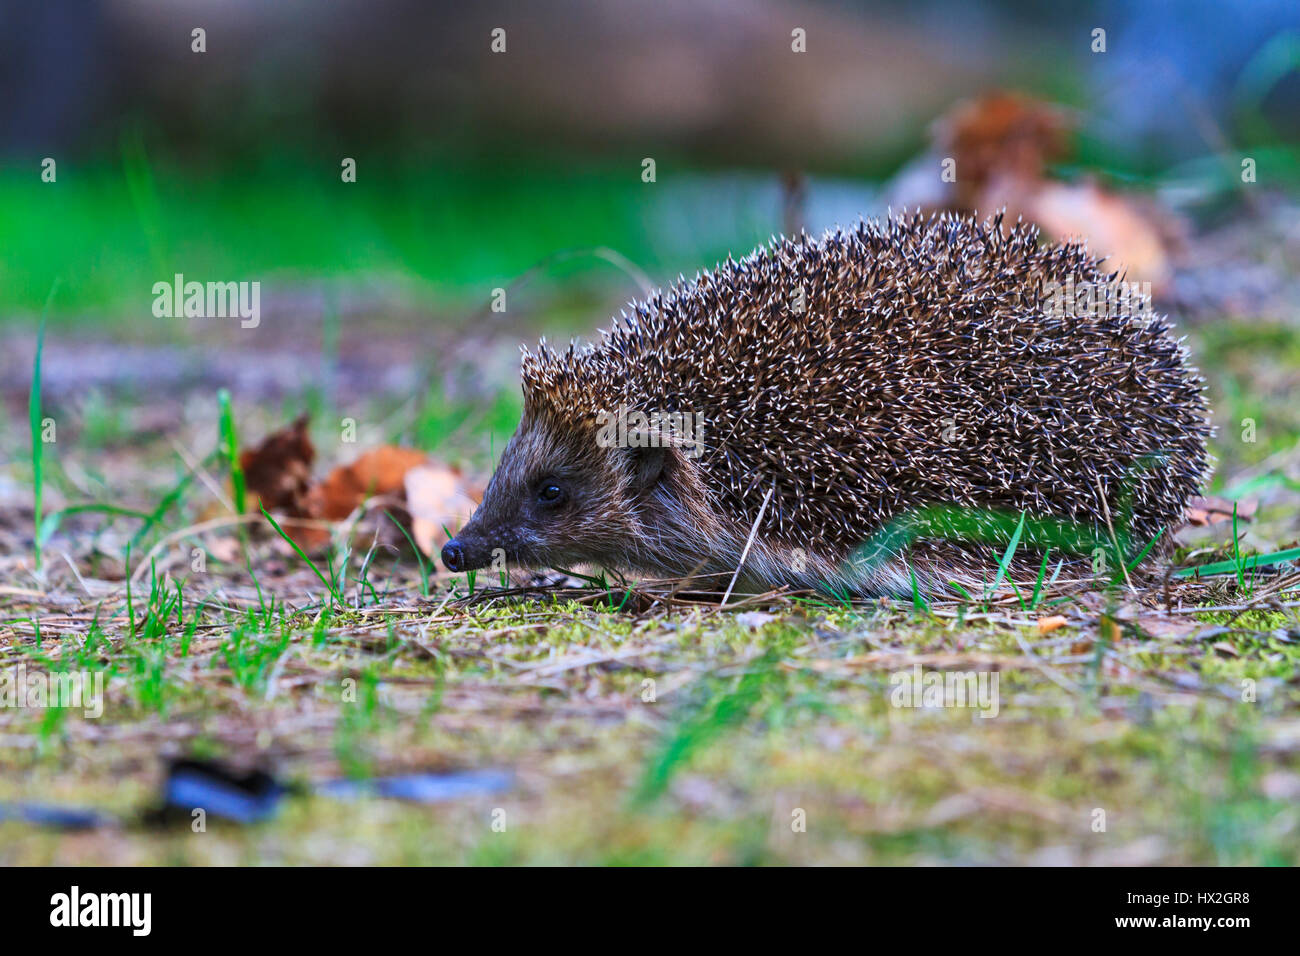 European hedgehog in a clearing in the woods,mammals, predator prickly animal complex, nocturnal animal, the animal - Stock Image